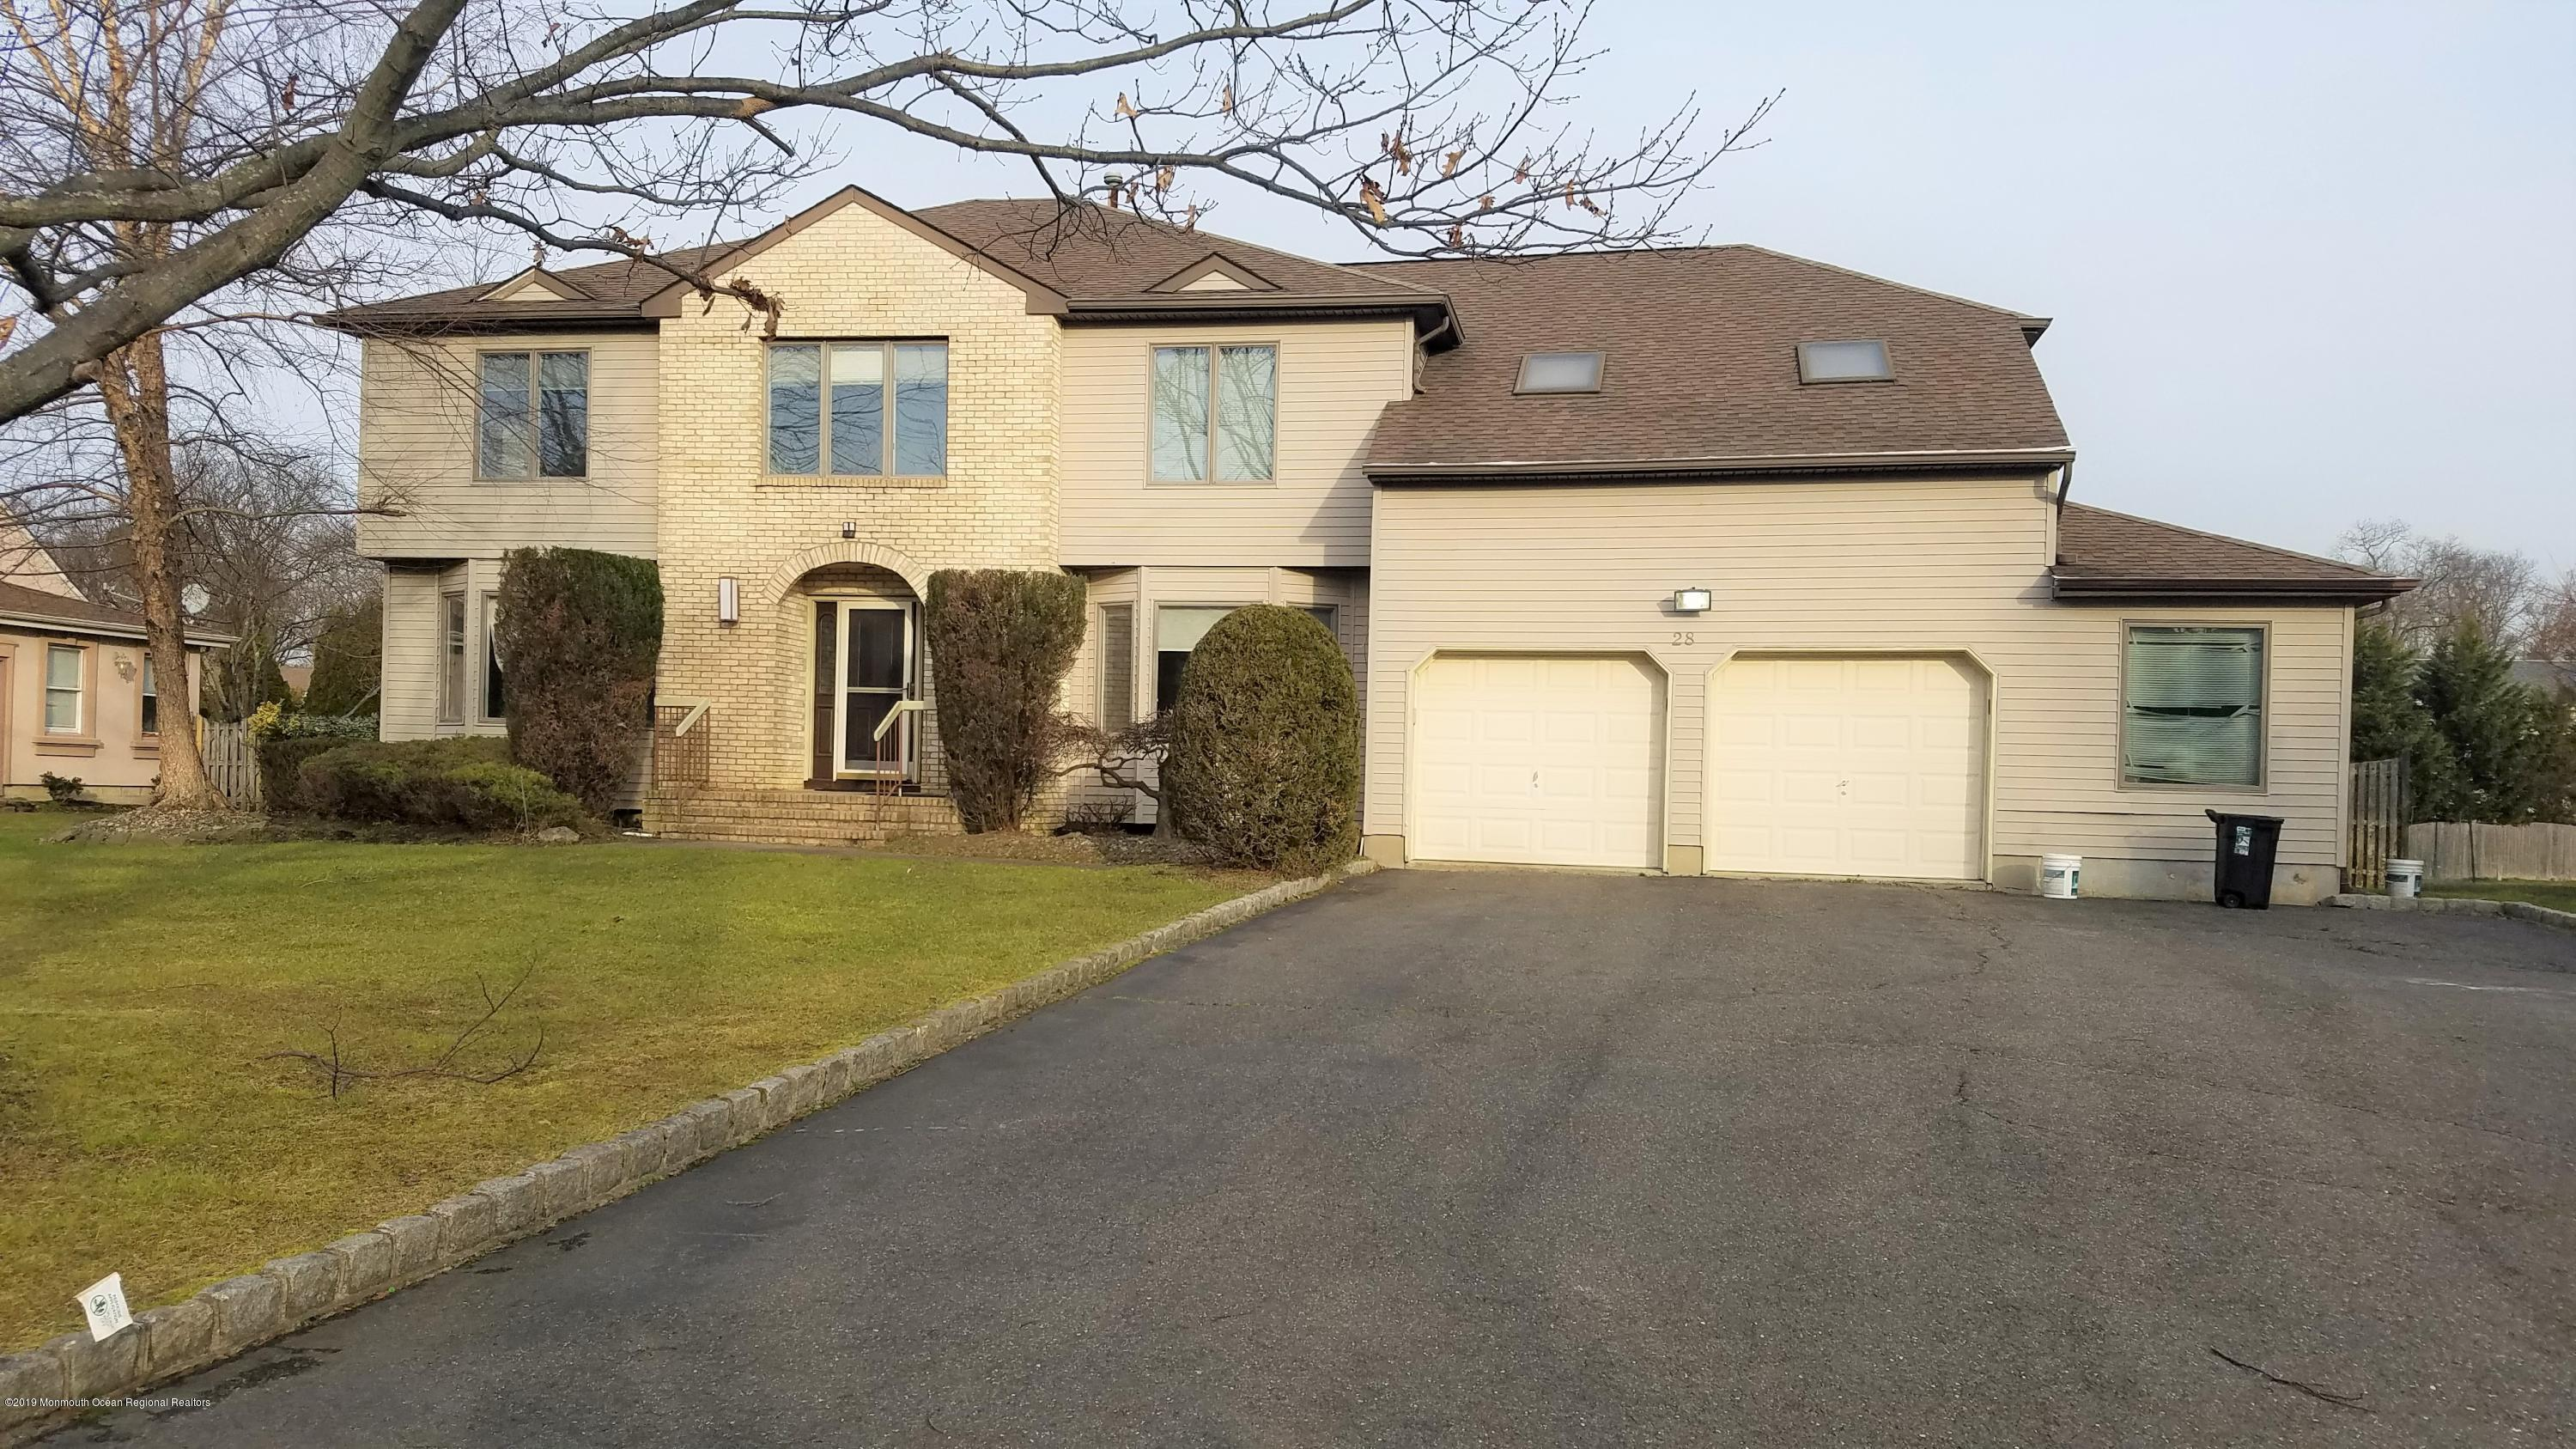 Photo of 28 Valley Forge Road, Eatontown, NJ 07724